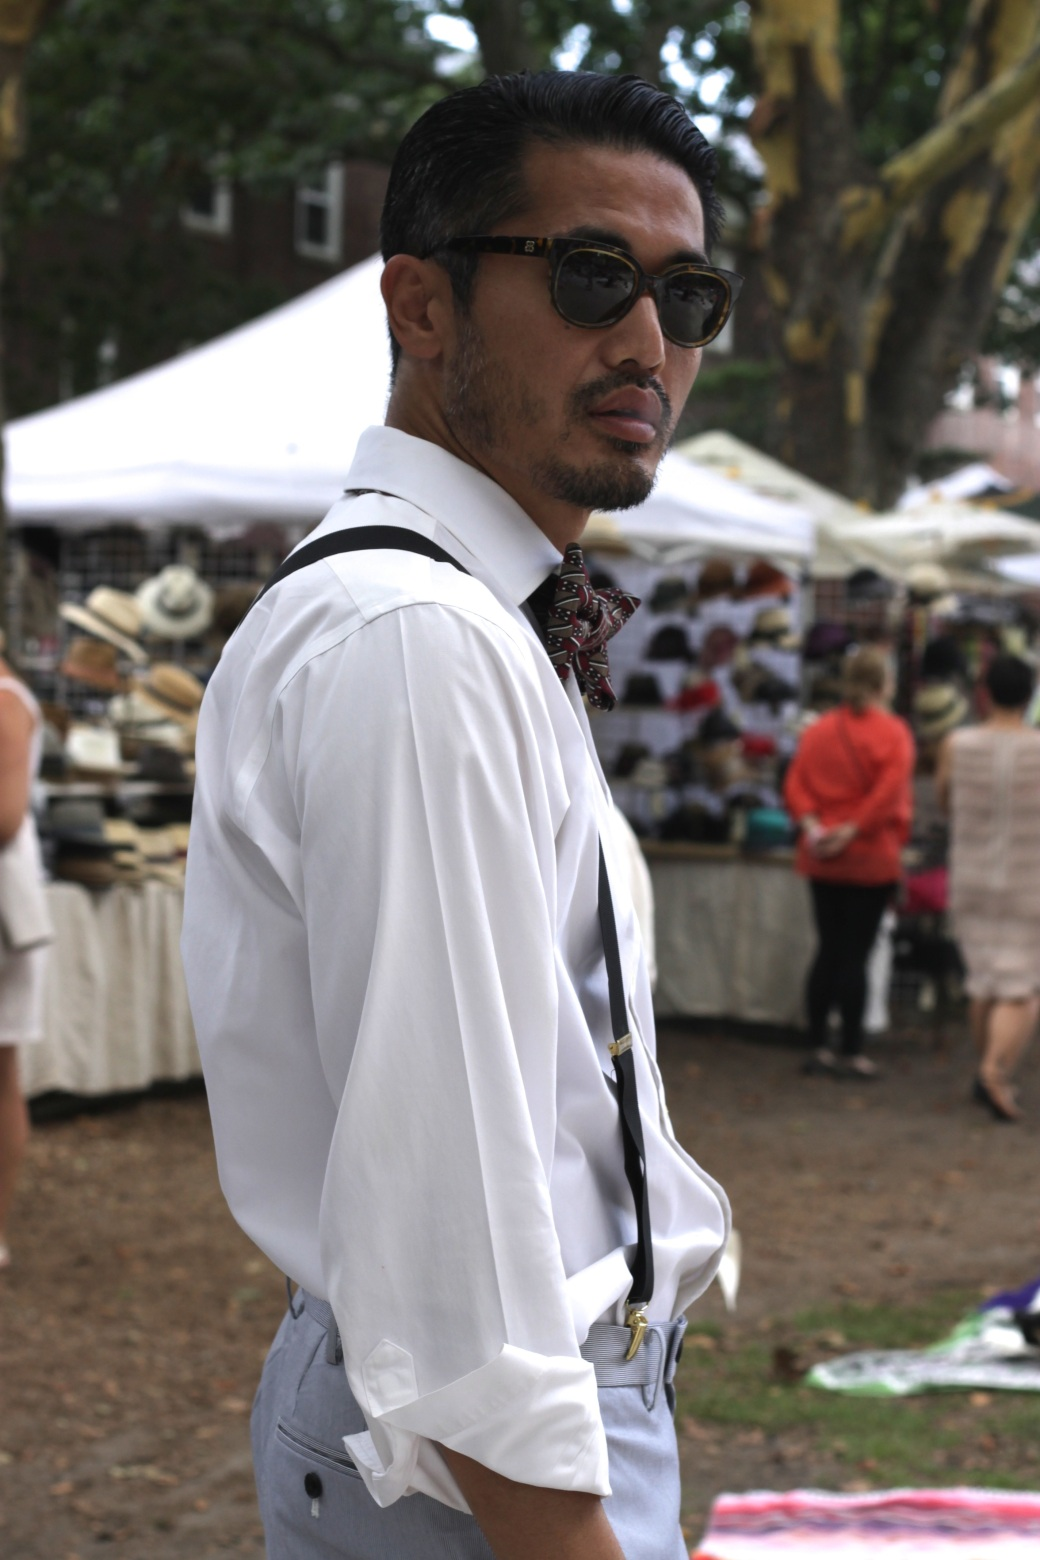 new york city governors island jazz age lawn party august 17 2014 21